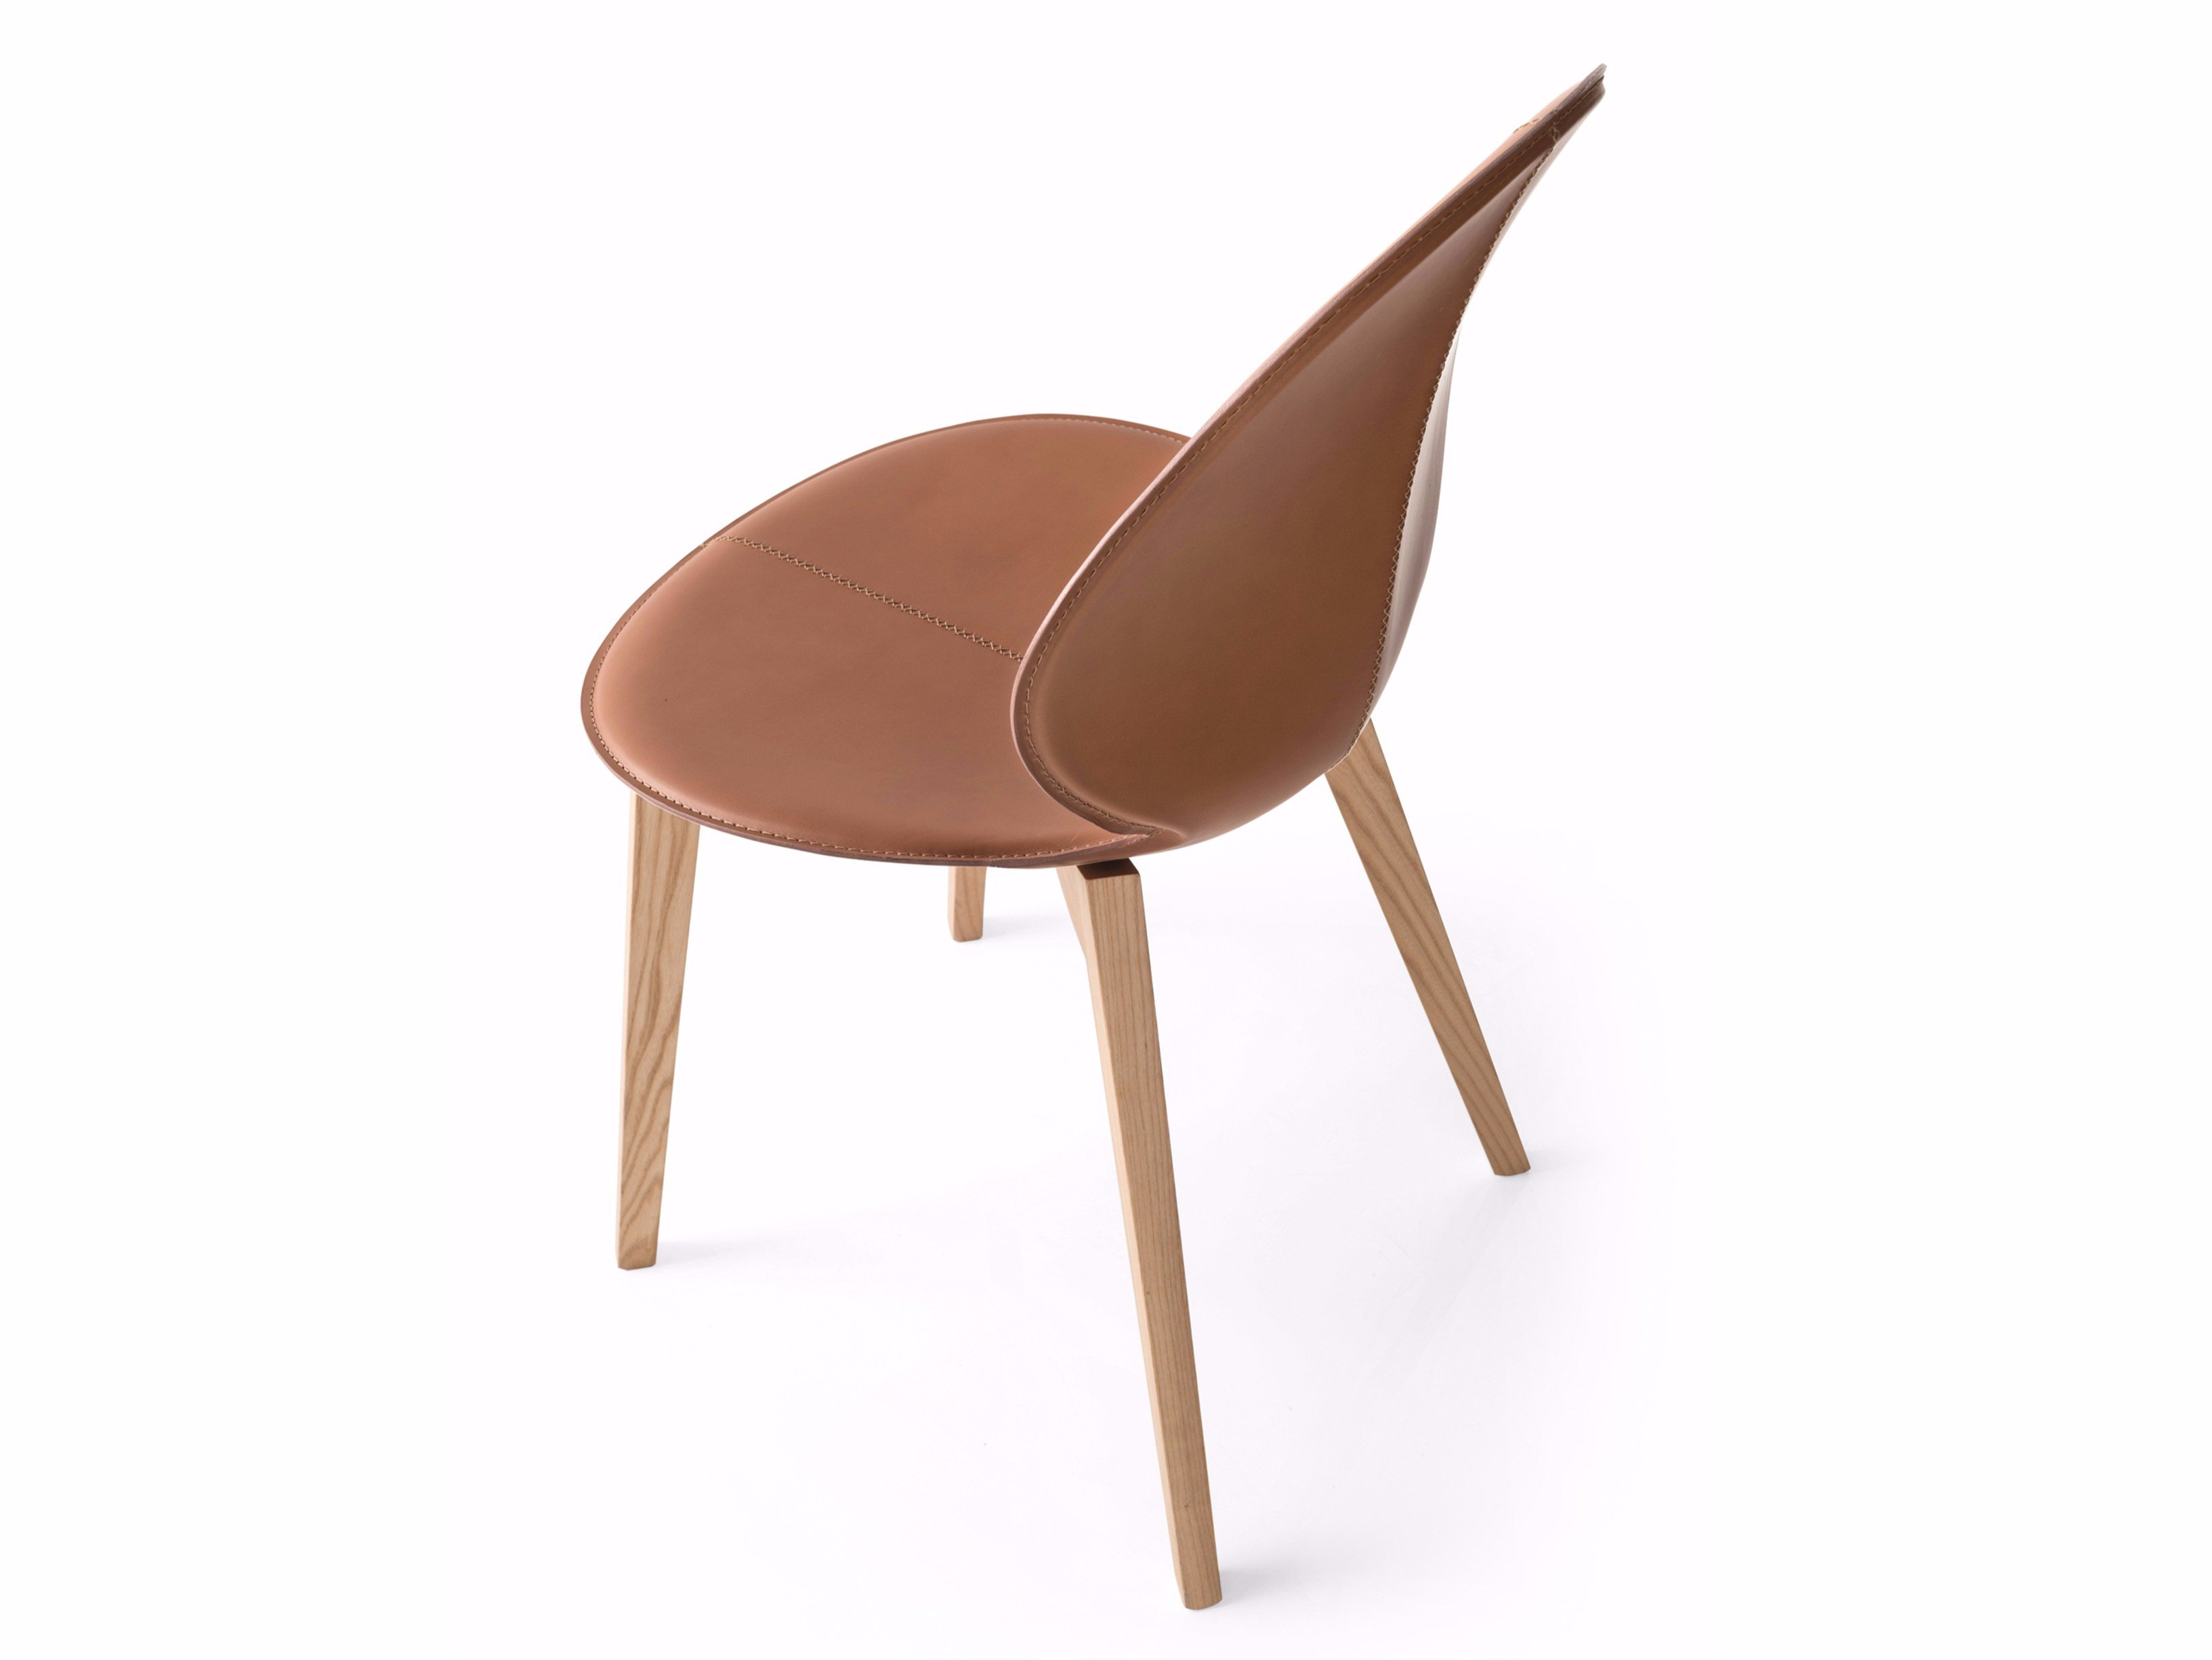 Upholstered tanned leather chair basil w by calligaris for Calligaris basil w